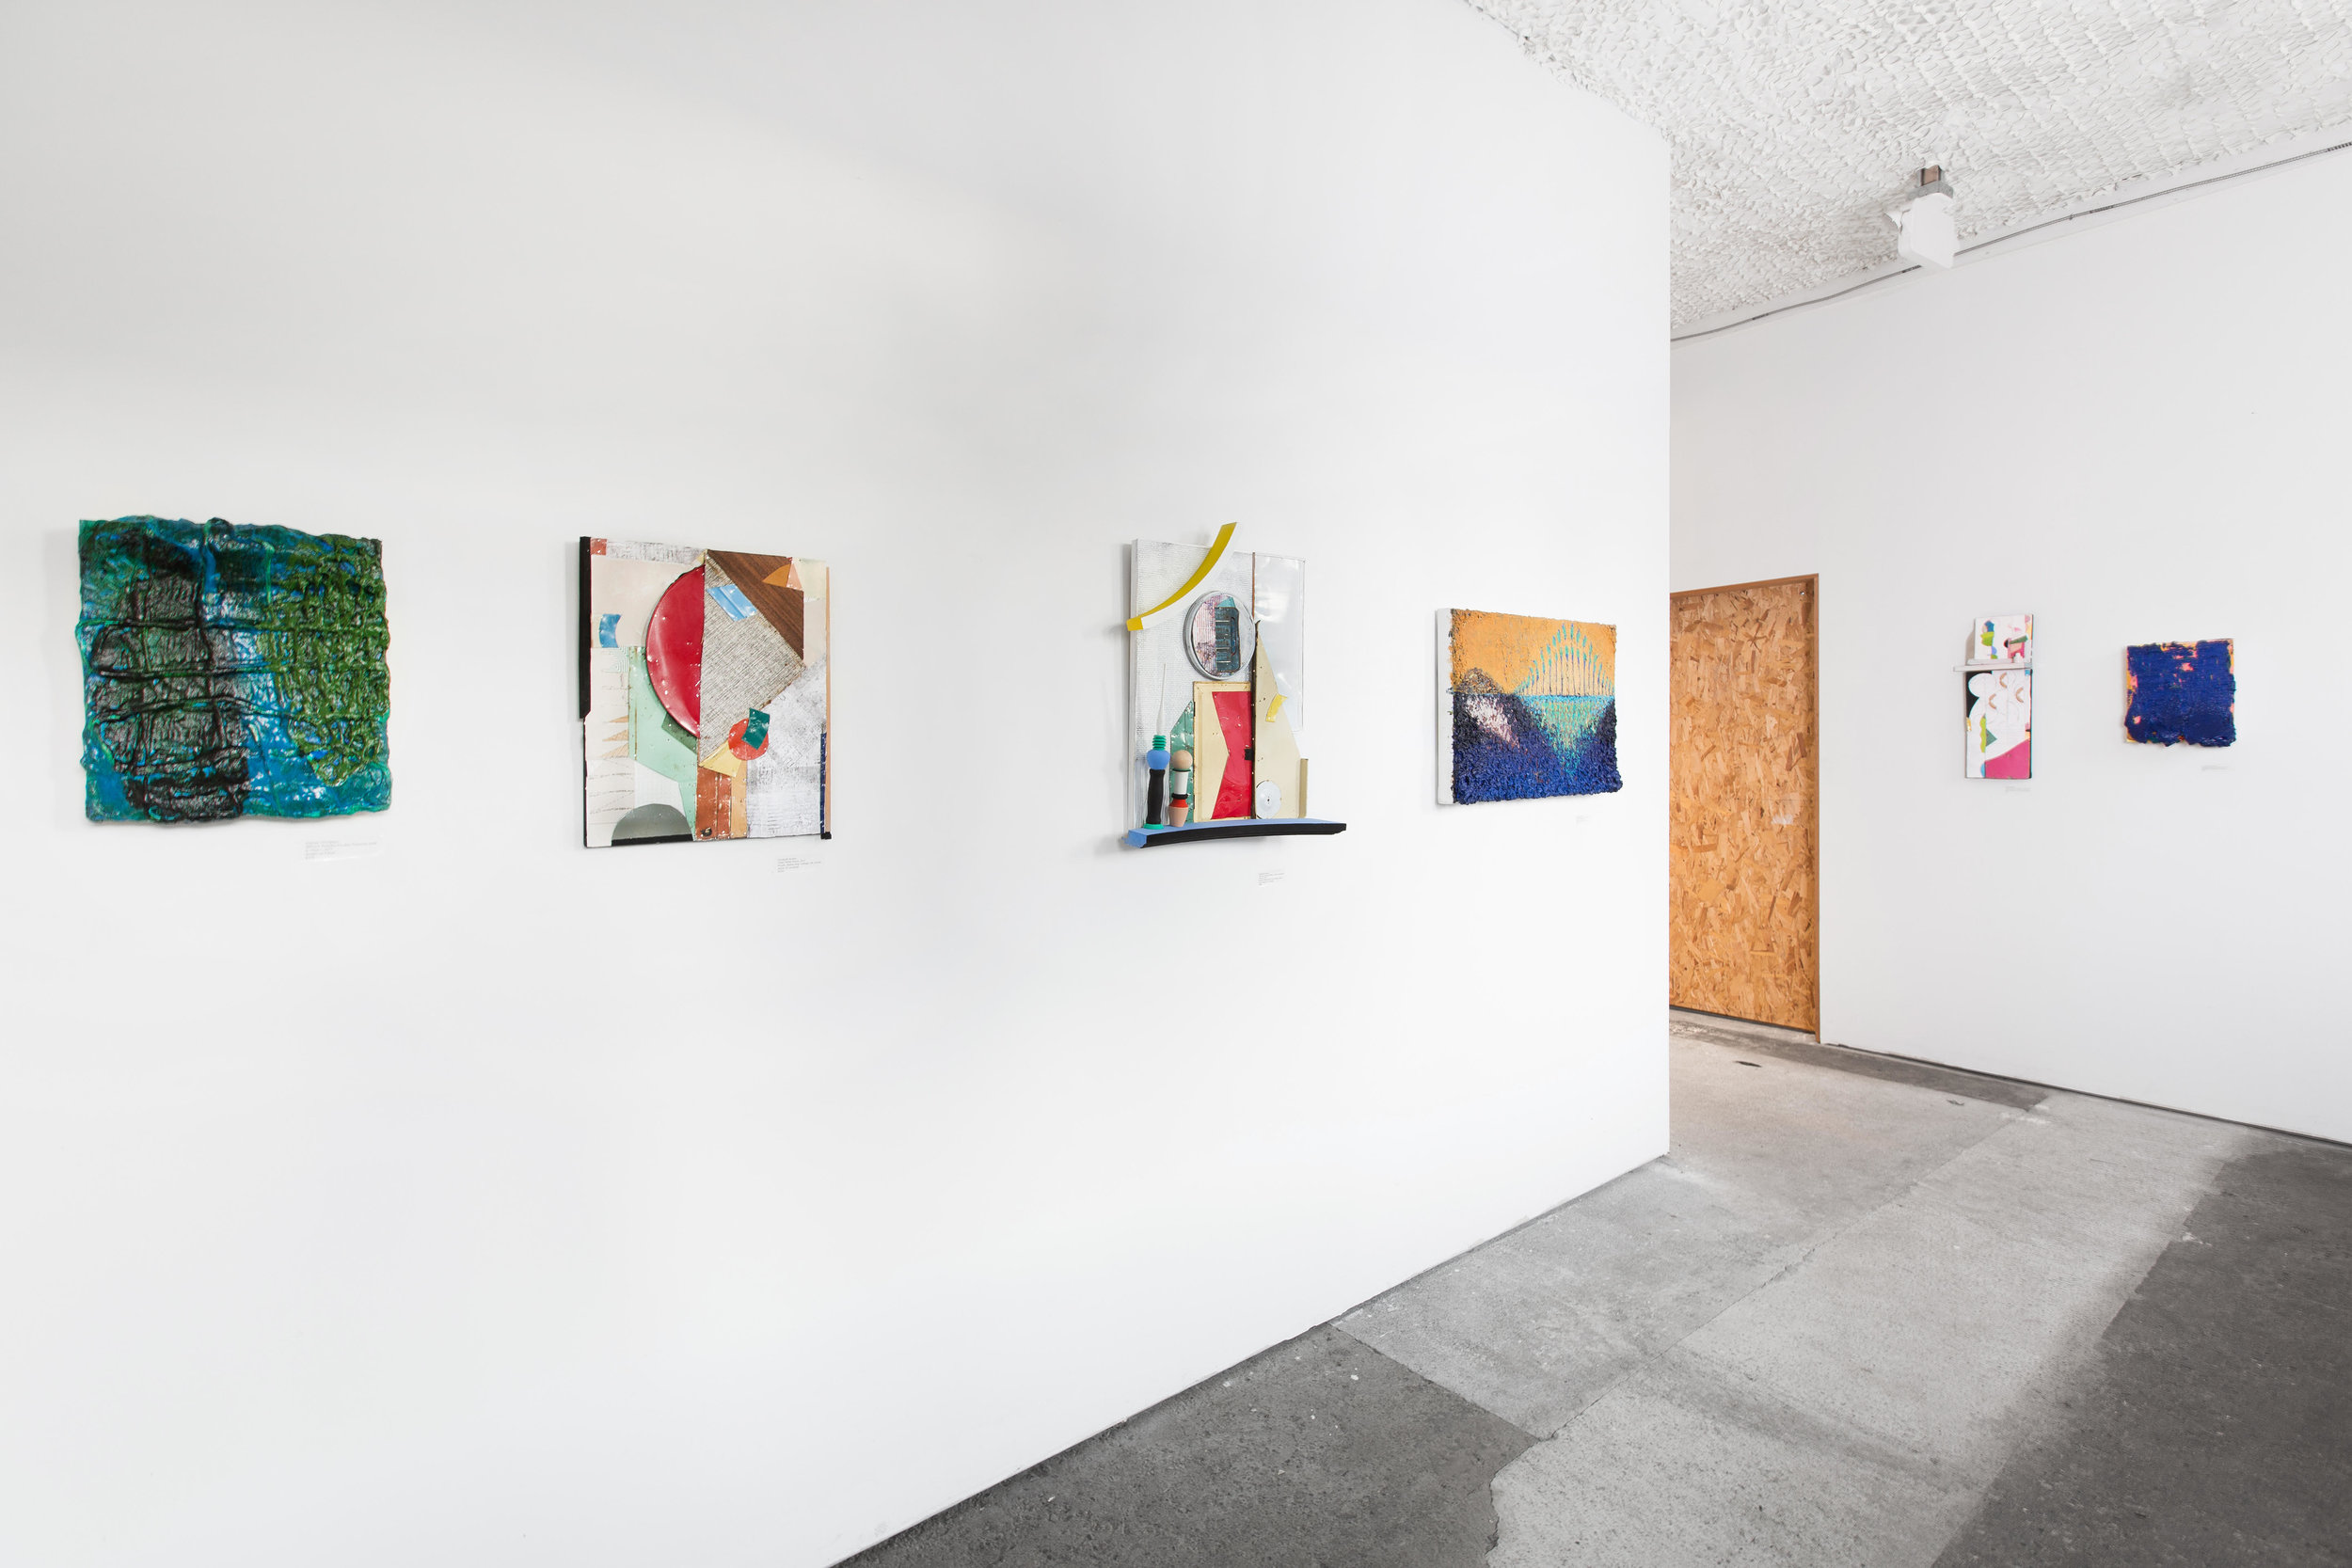 Installation View, Photography by Raphael Soldi